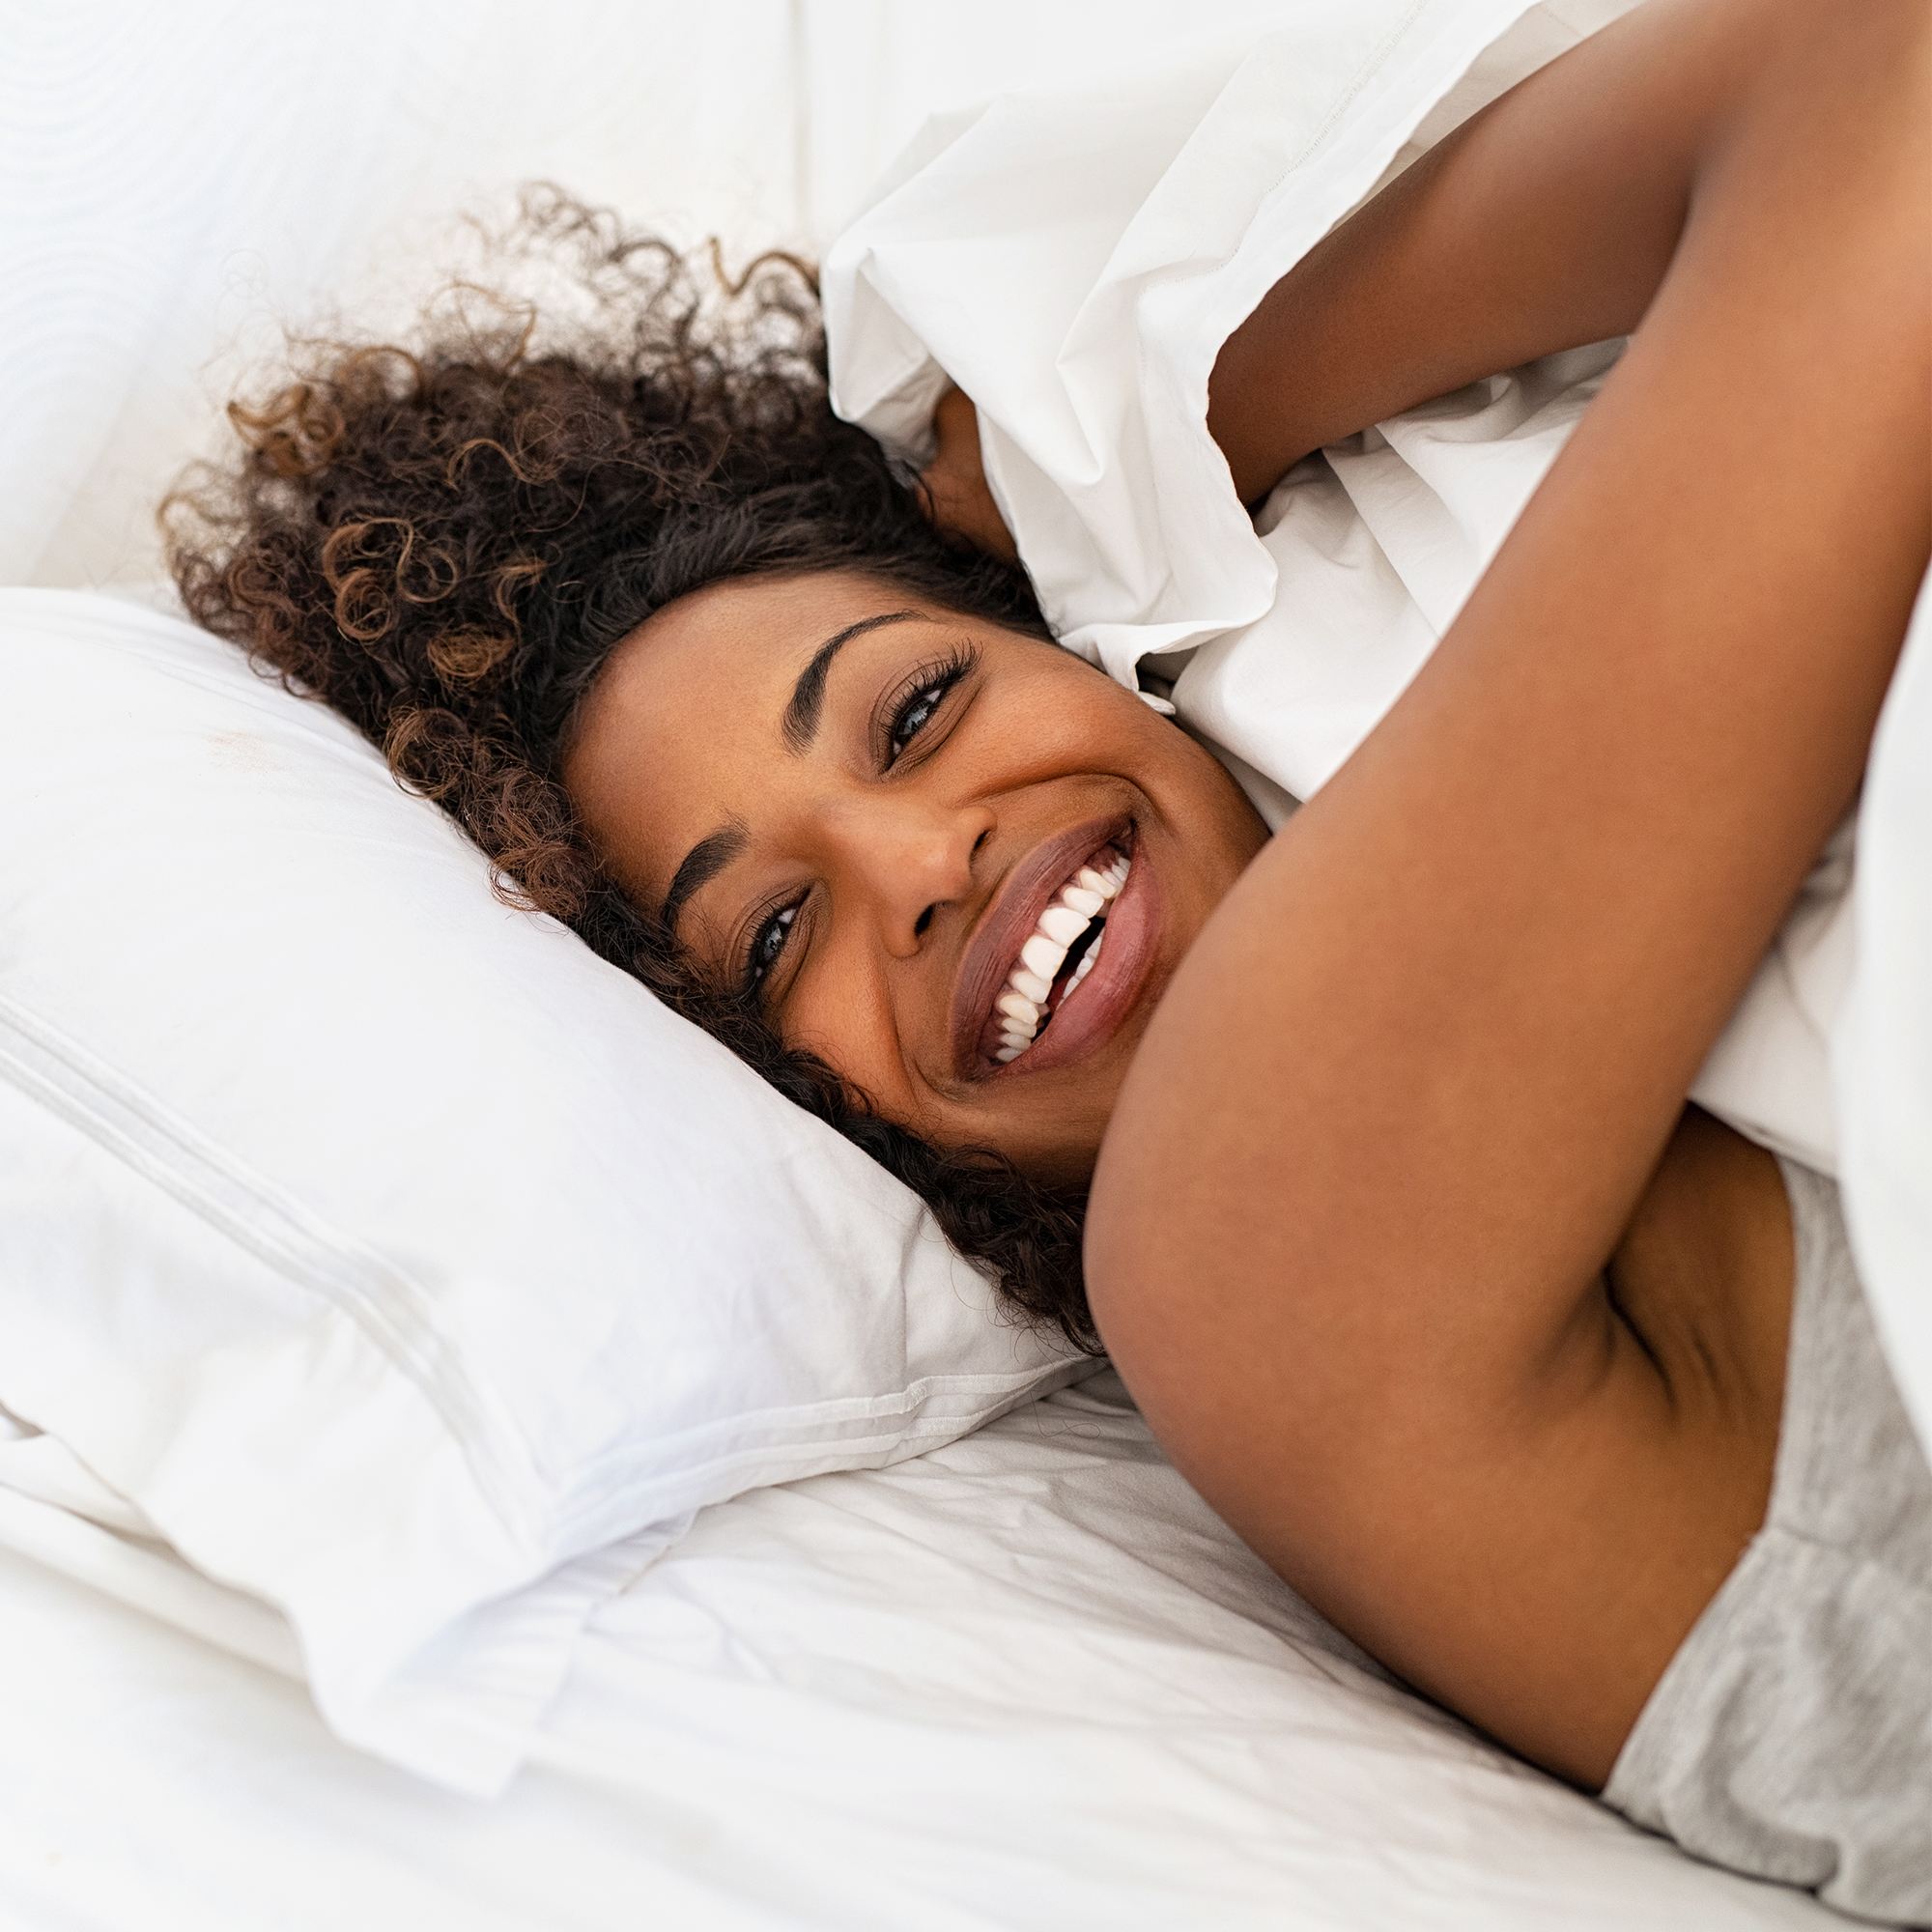 Best Bedding For Your Skin According To Dermatologists